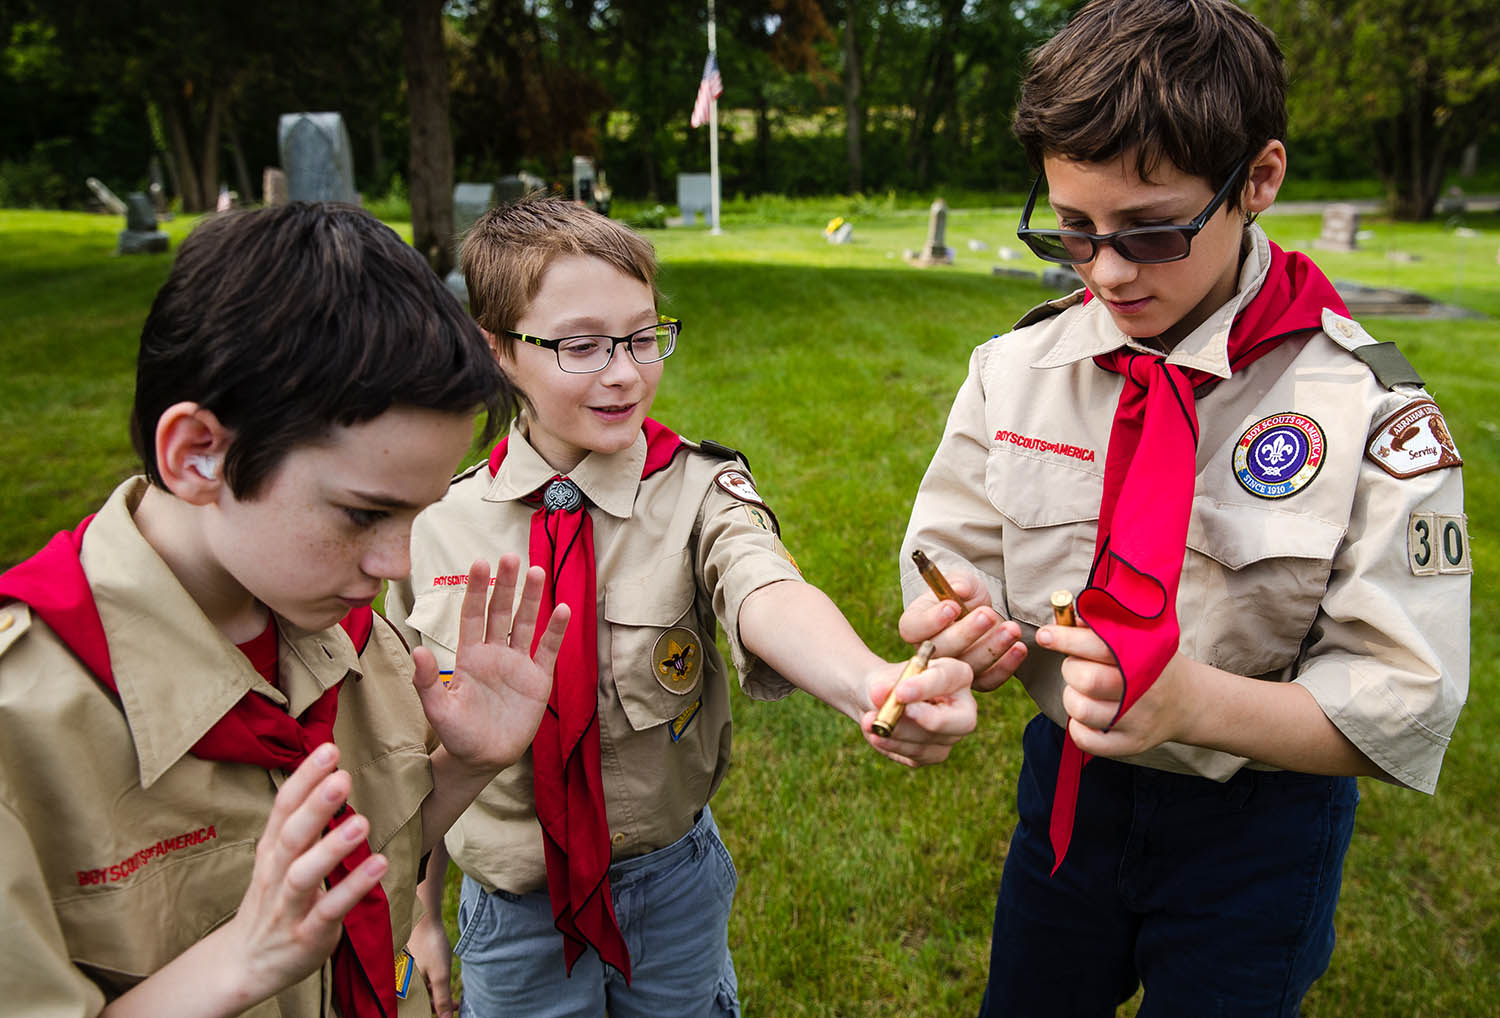 Members of Boy Scout Troop 305 compare the spent shell casings they collected at the conclusion of a Memorial Day observance at Salisbury Cemetery Monday, May 27, 2019. [Ted Schurter/The State Journal-Register]